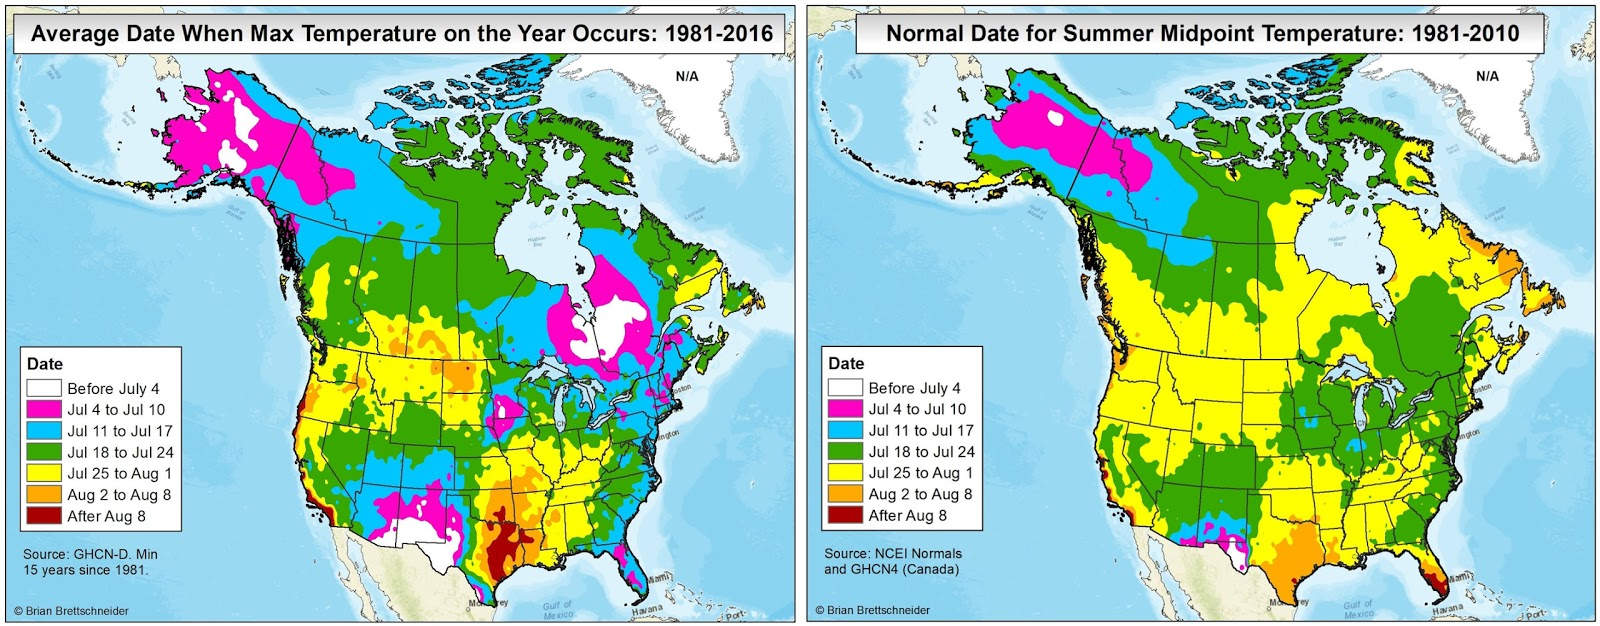 Canada Seasonal Average Temperature Map Brian B's Climate Blog: Average Annual High Temperature vs